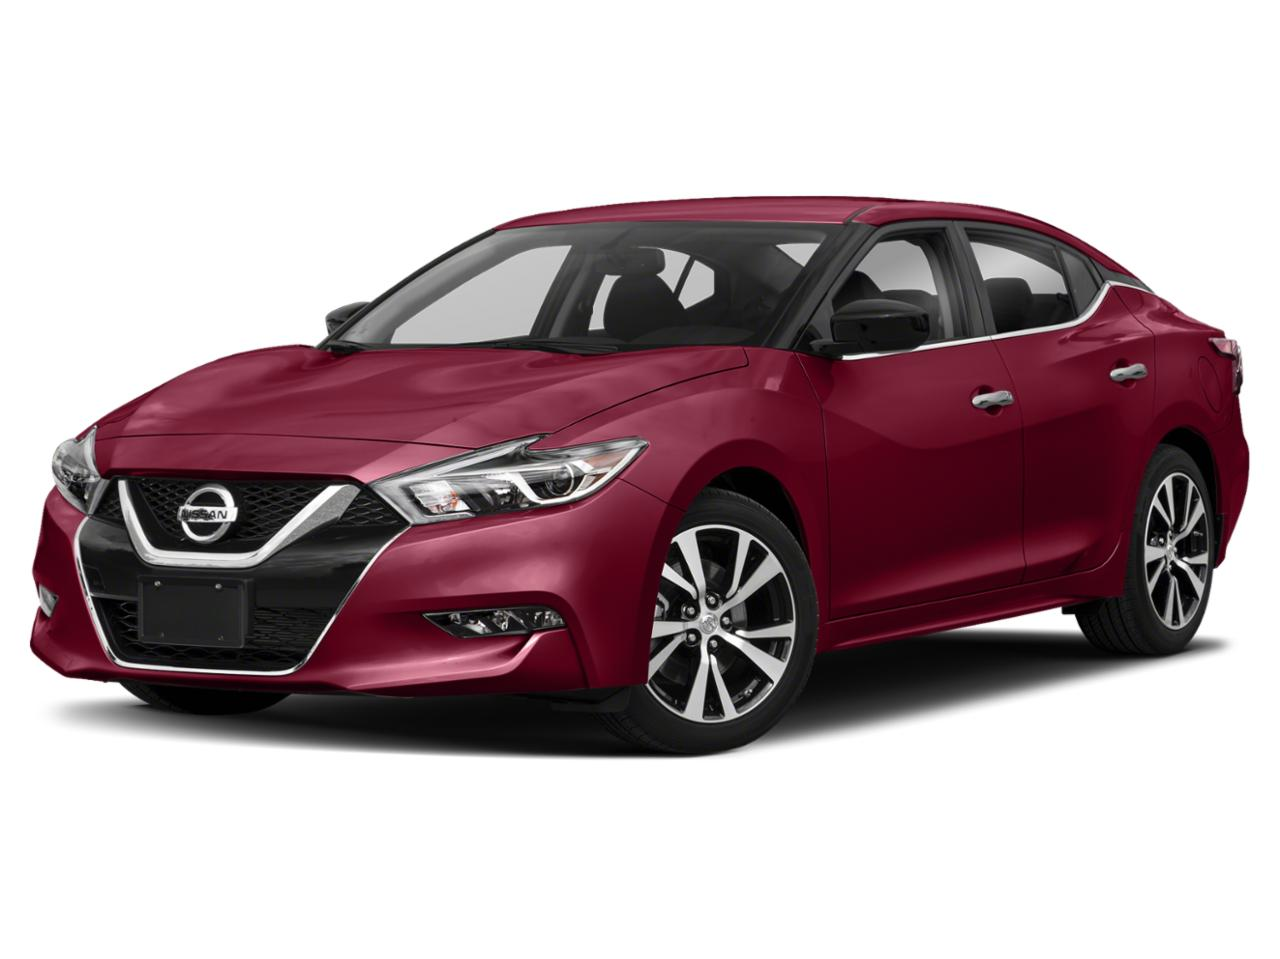 2018 Nissan Maxima Vehicle Photo in Oshkosh, WI 54904